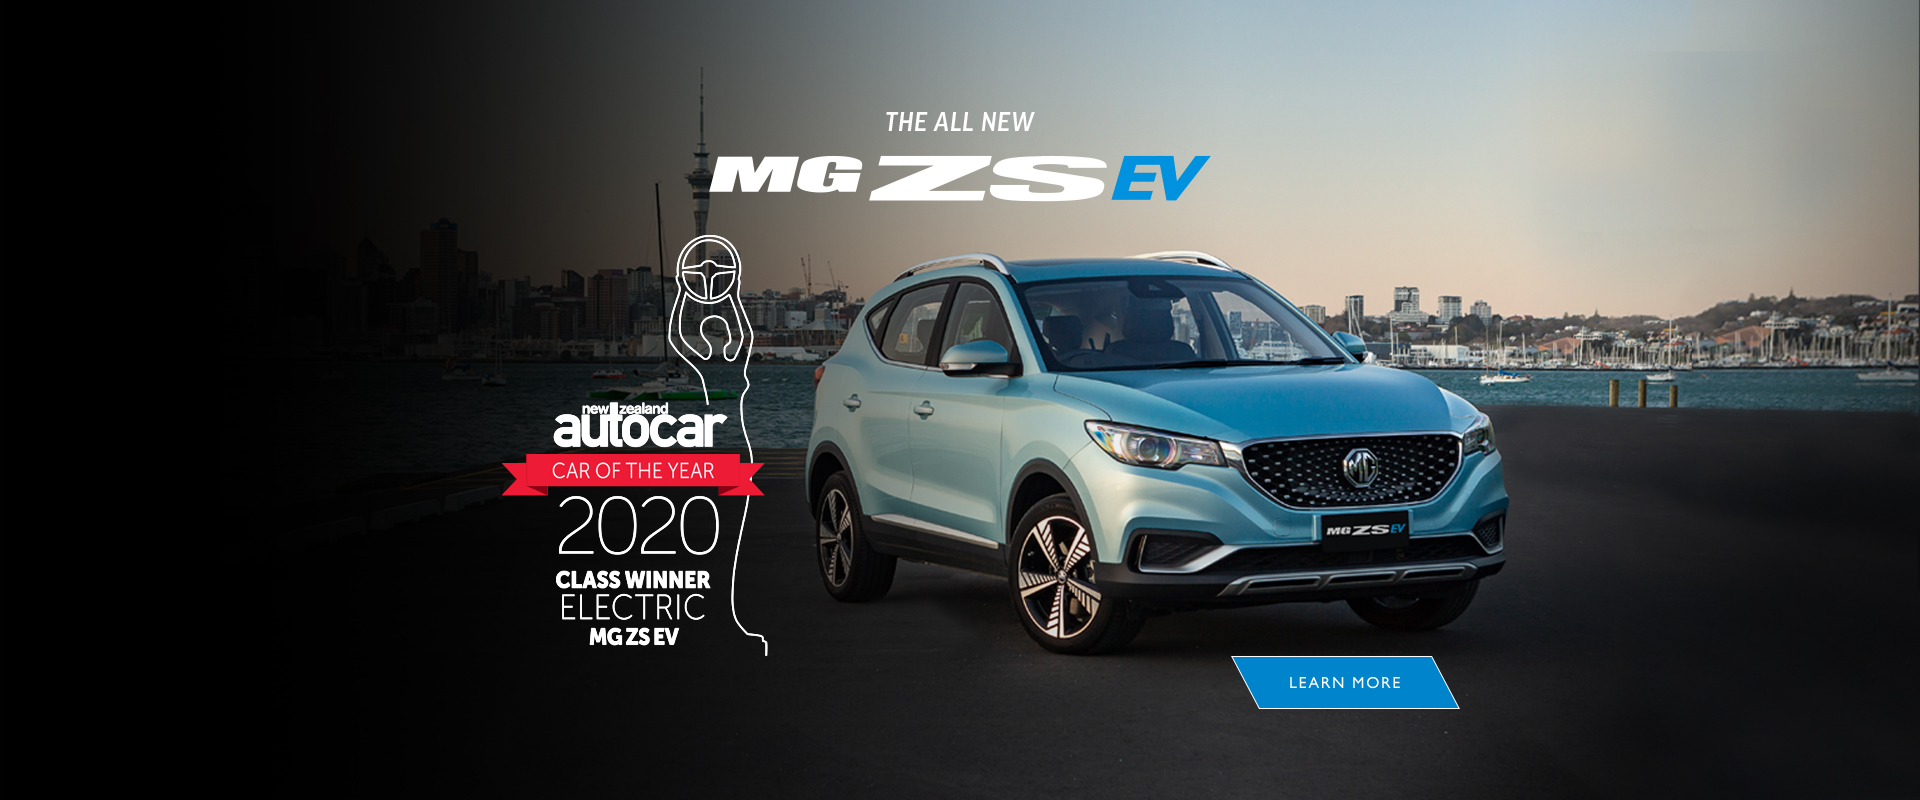 The new MG ZS EV. Electric for Everyone.